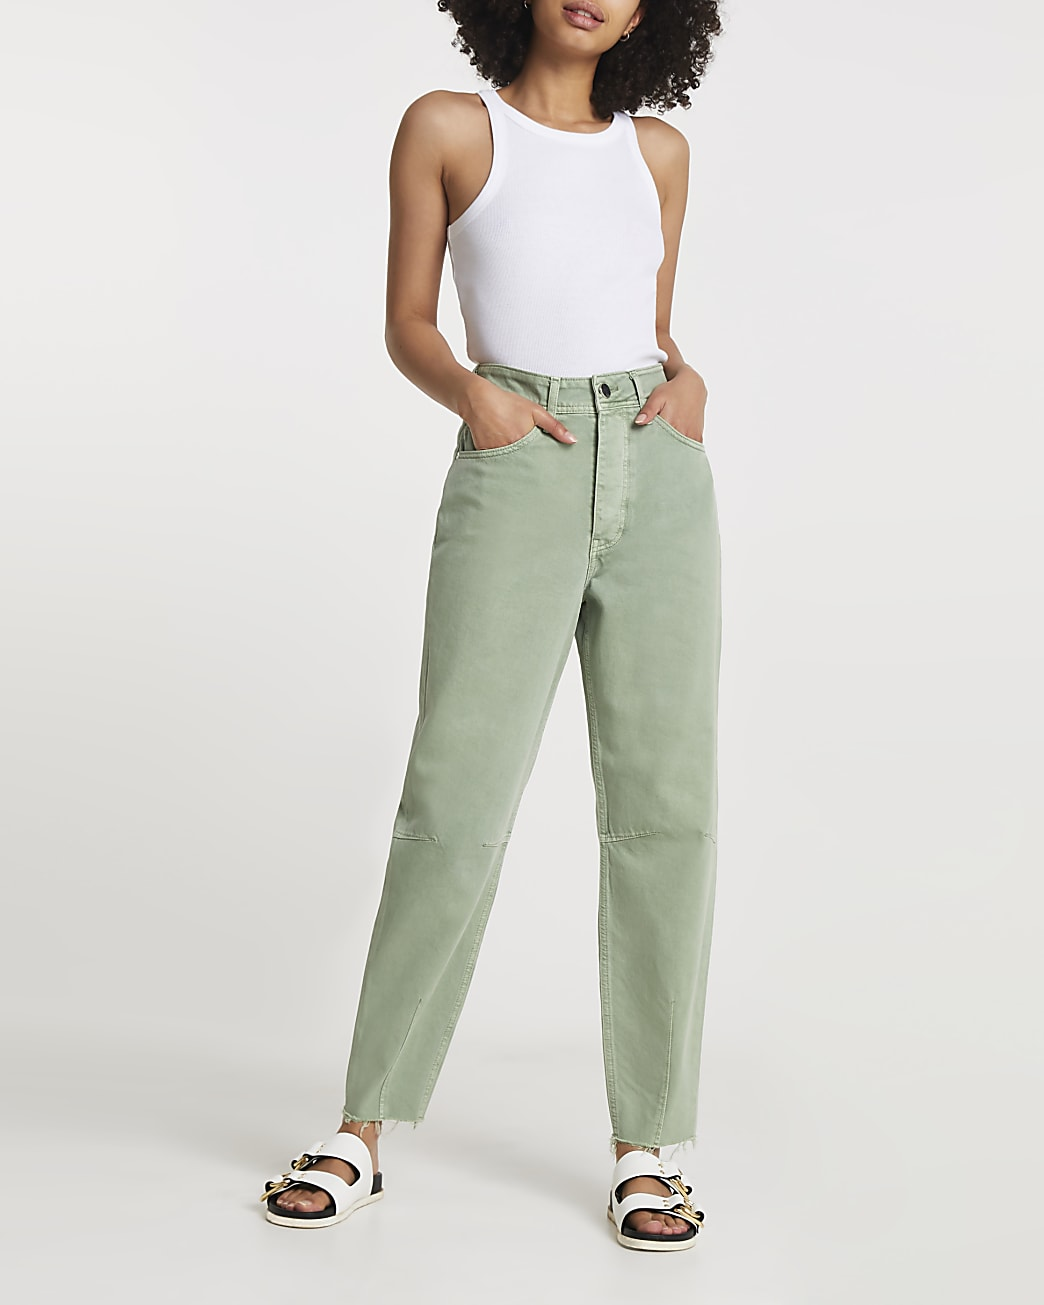 Green high waisted tapered jean